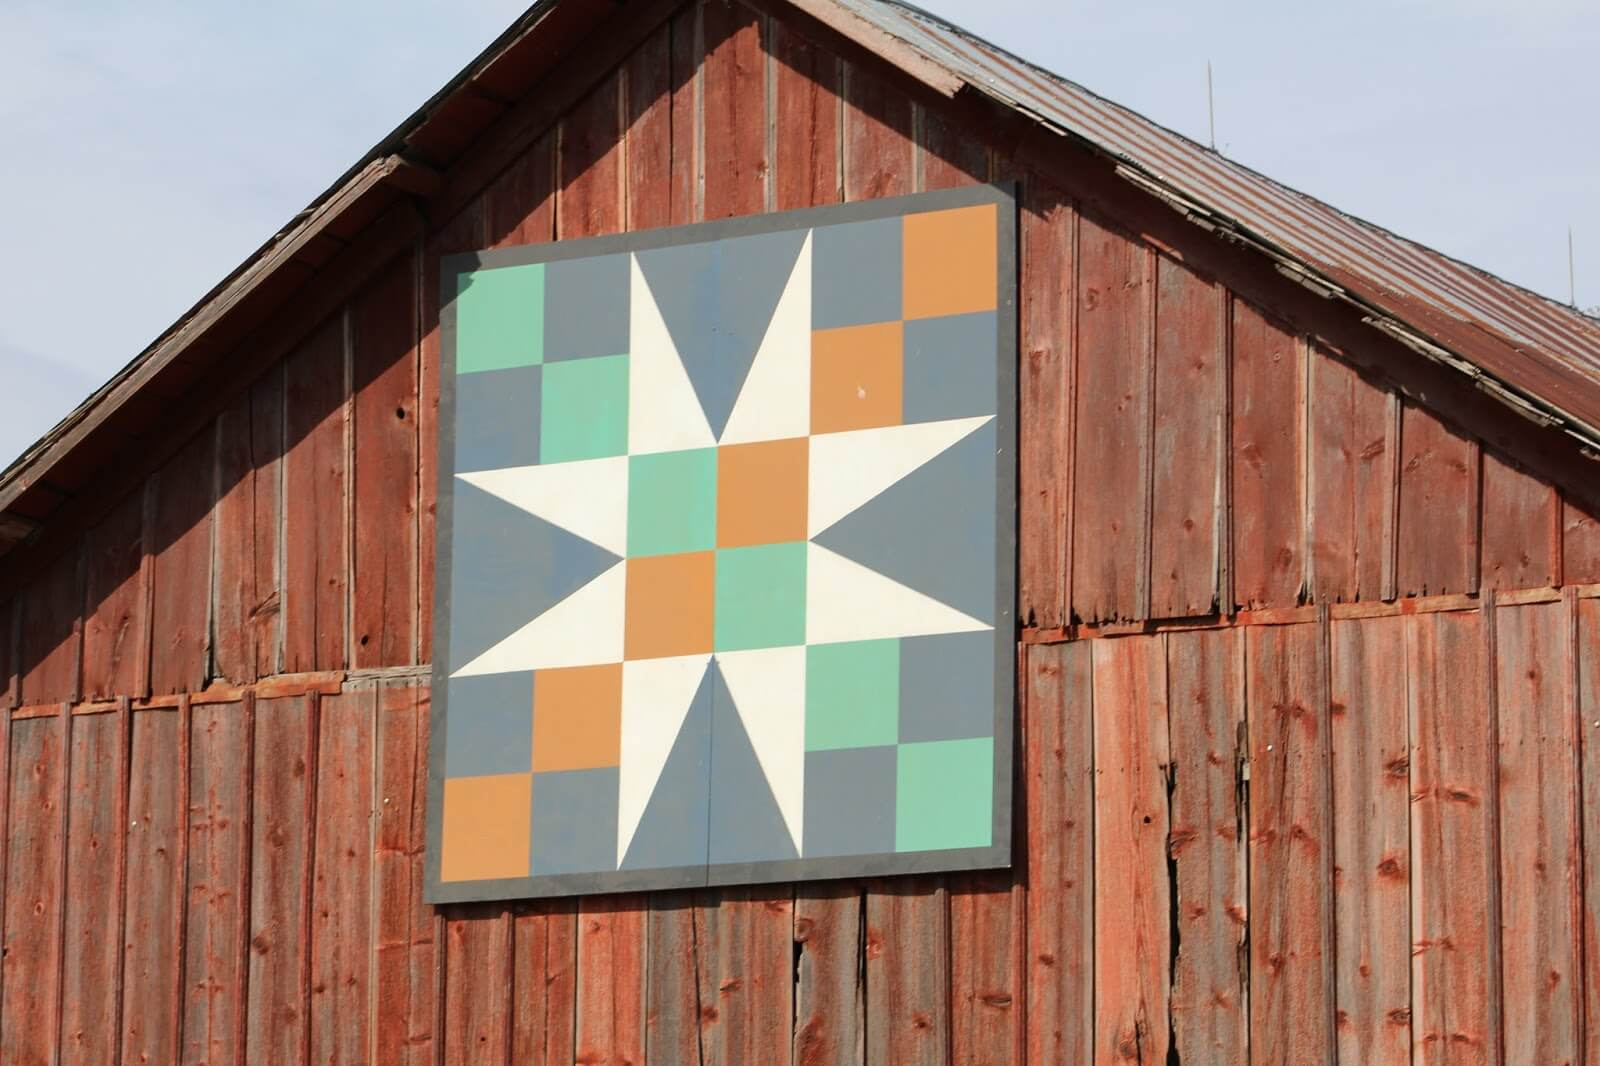 barn along flint hills quilt trail